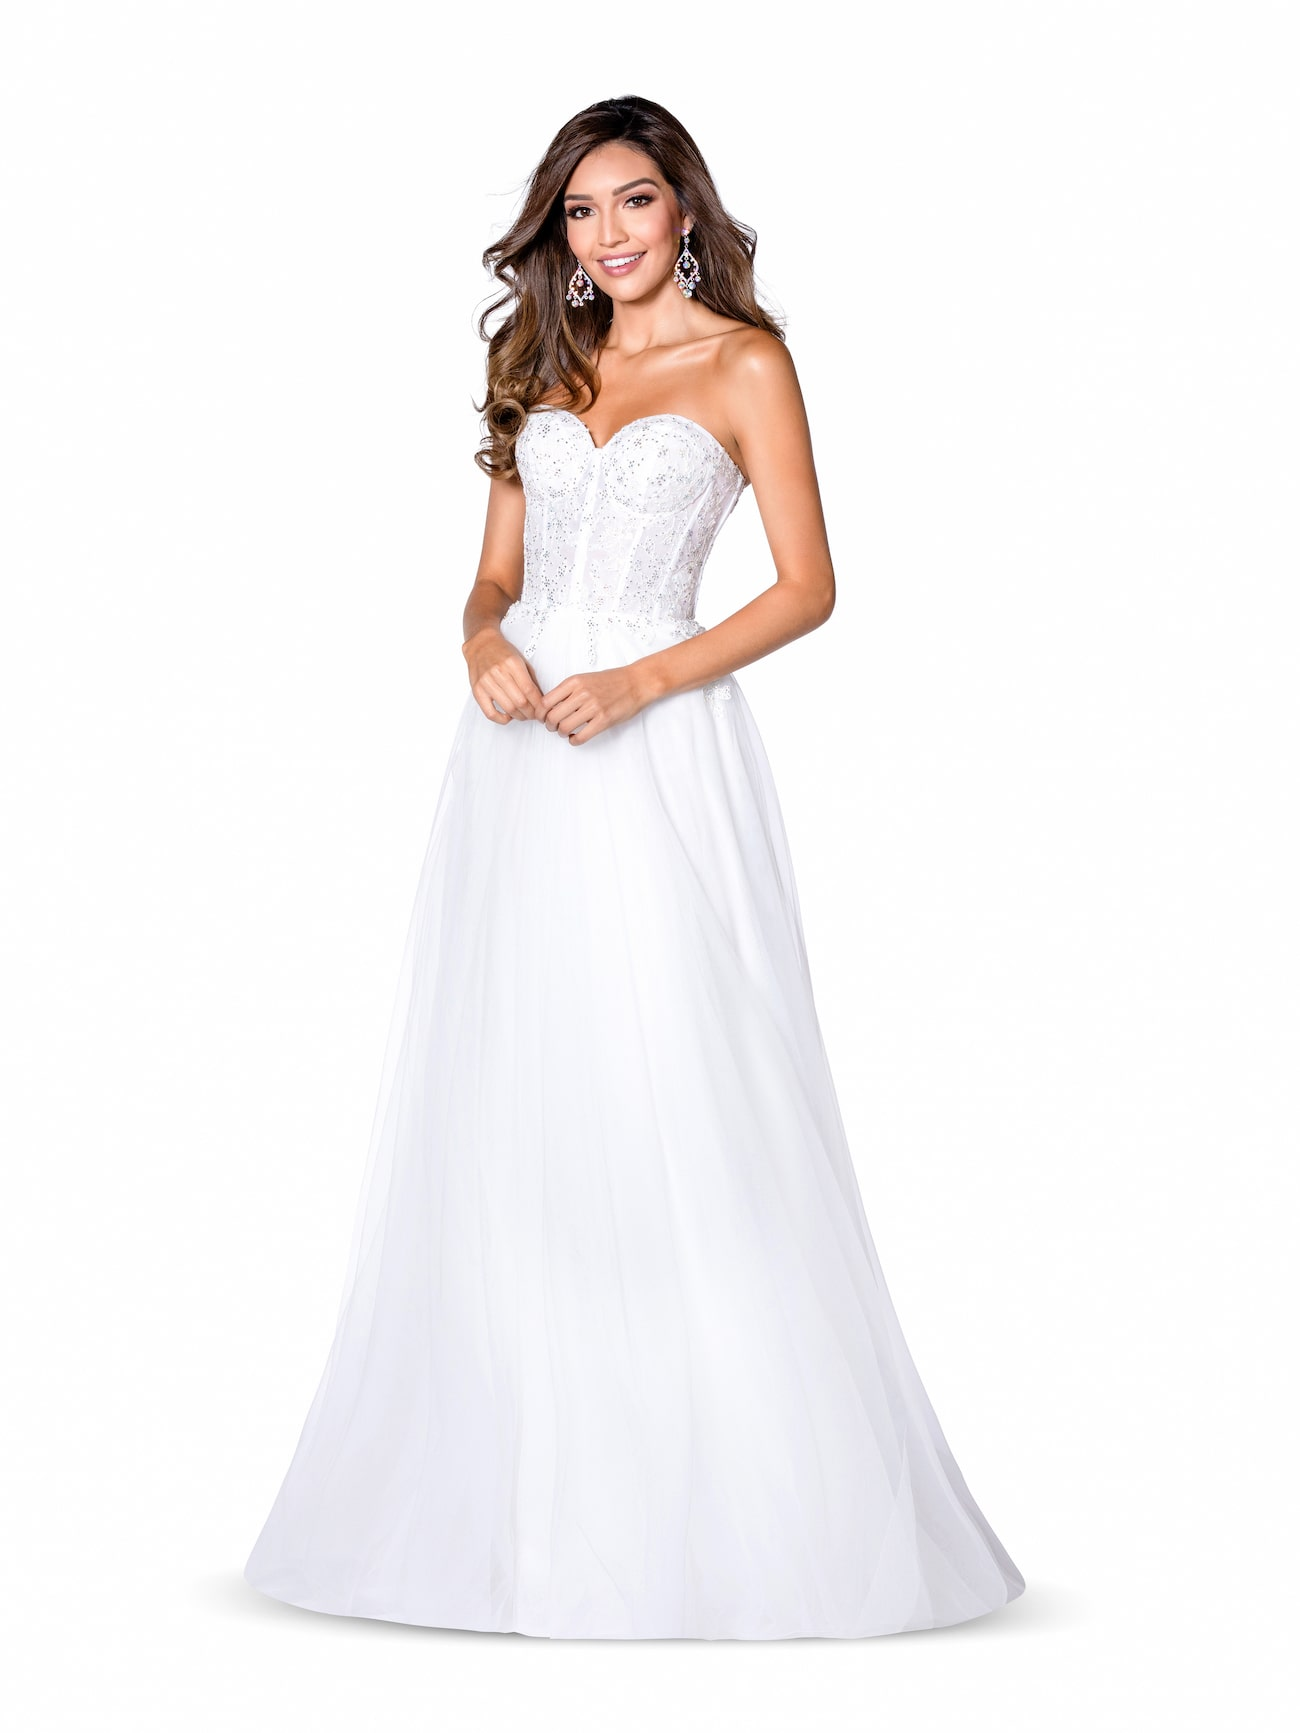 Vienna White Size 4 Backless A-line Dress on Queenly